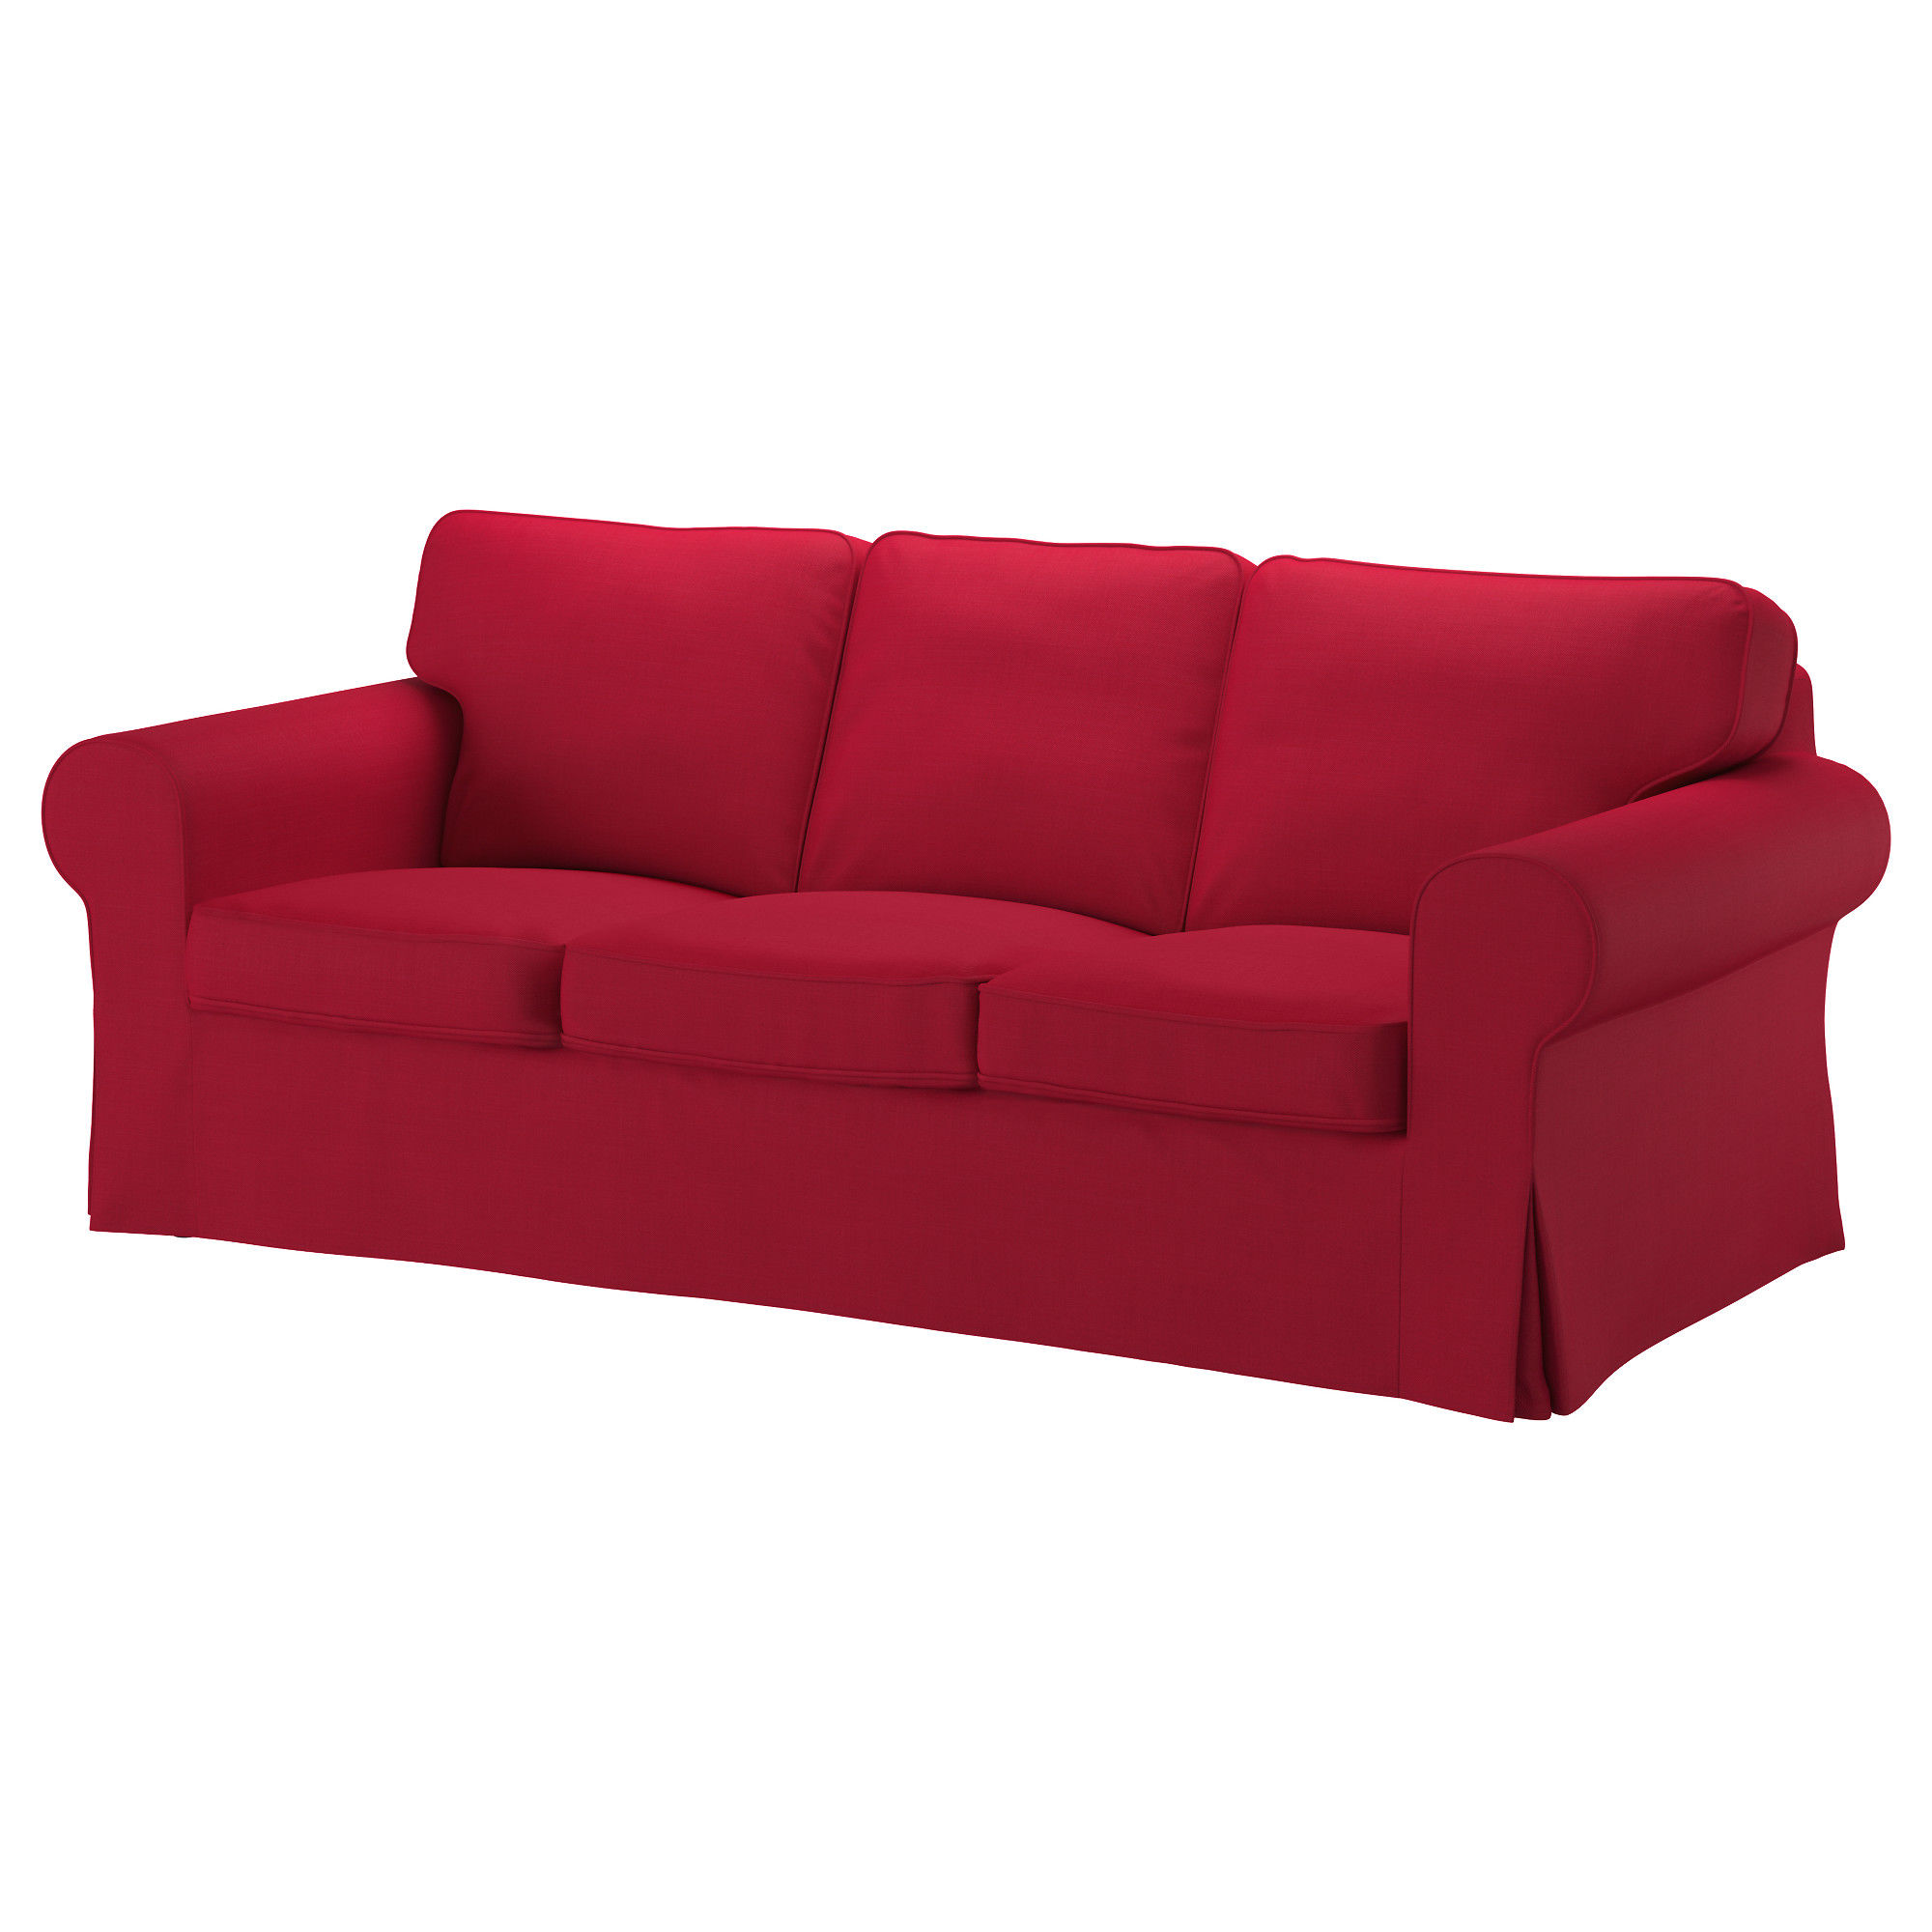 contemporary sofa bed target online-Best Of sofa Bed Target Collection